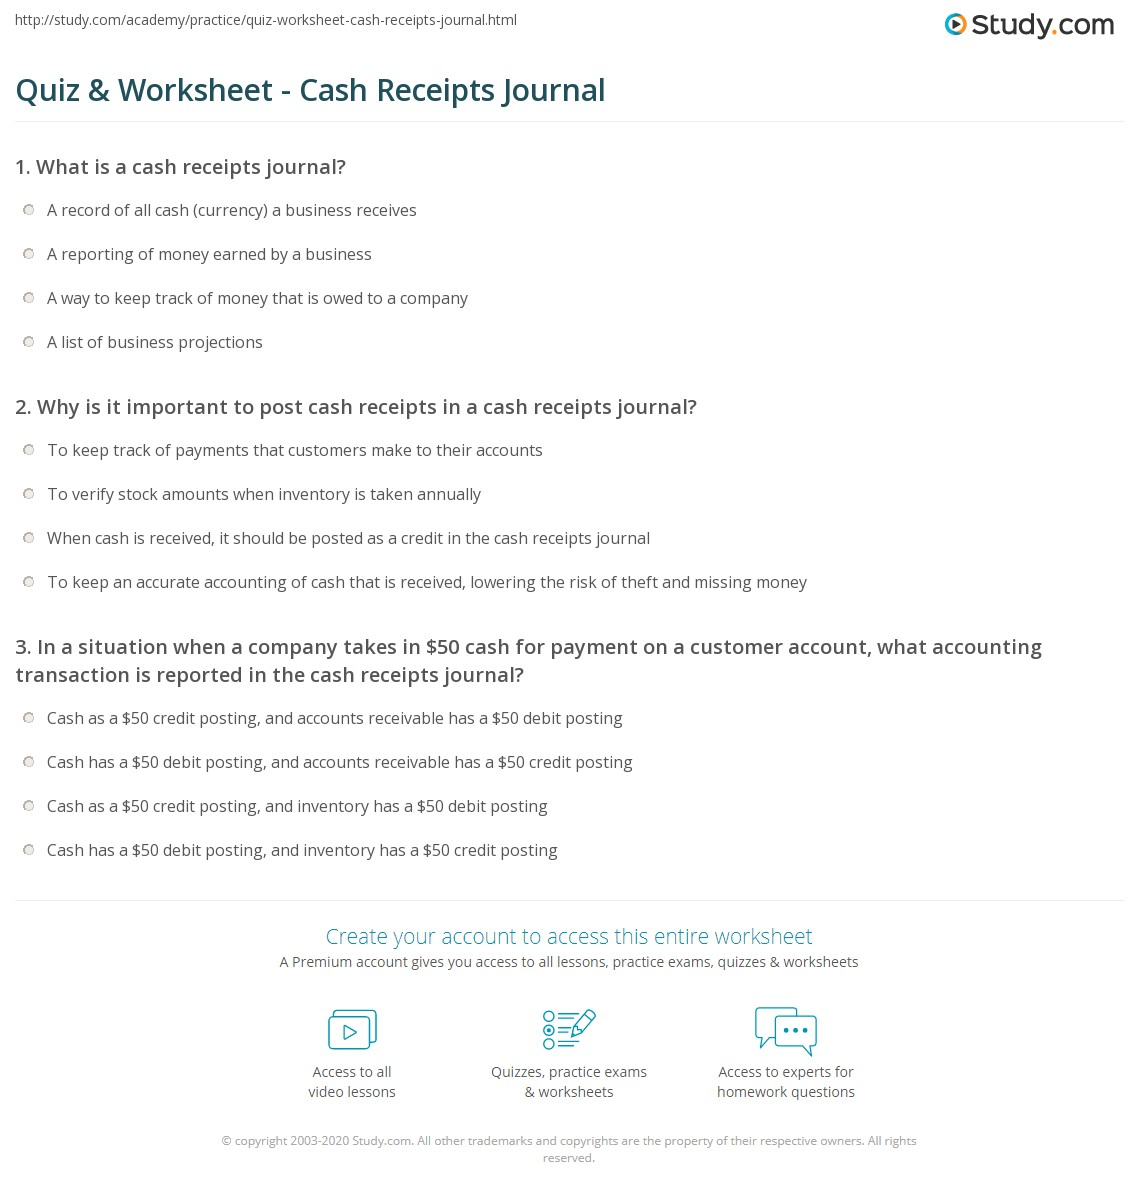 Quiz and Worksheet Cash Receipts Journal – Examples of Cash Receipts